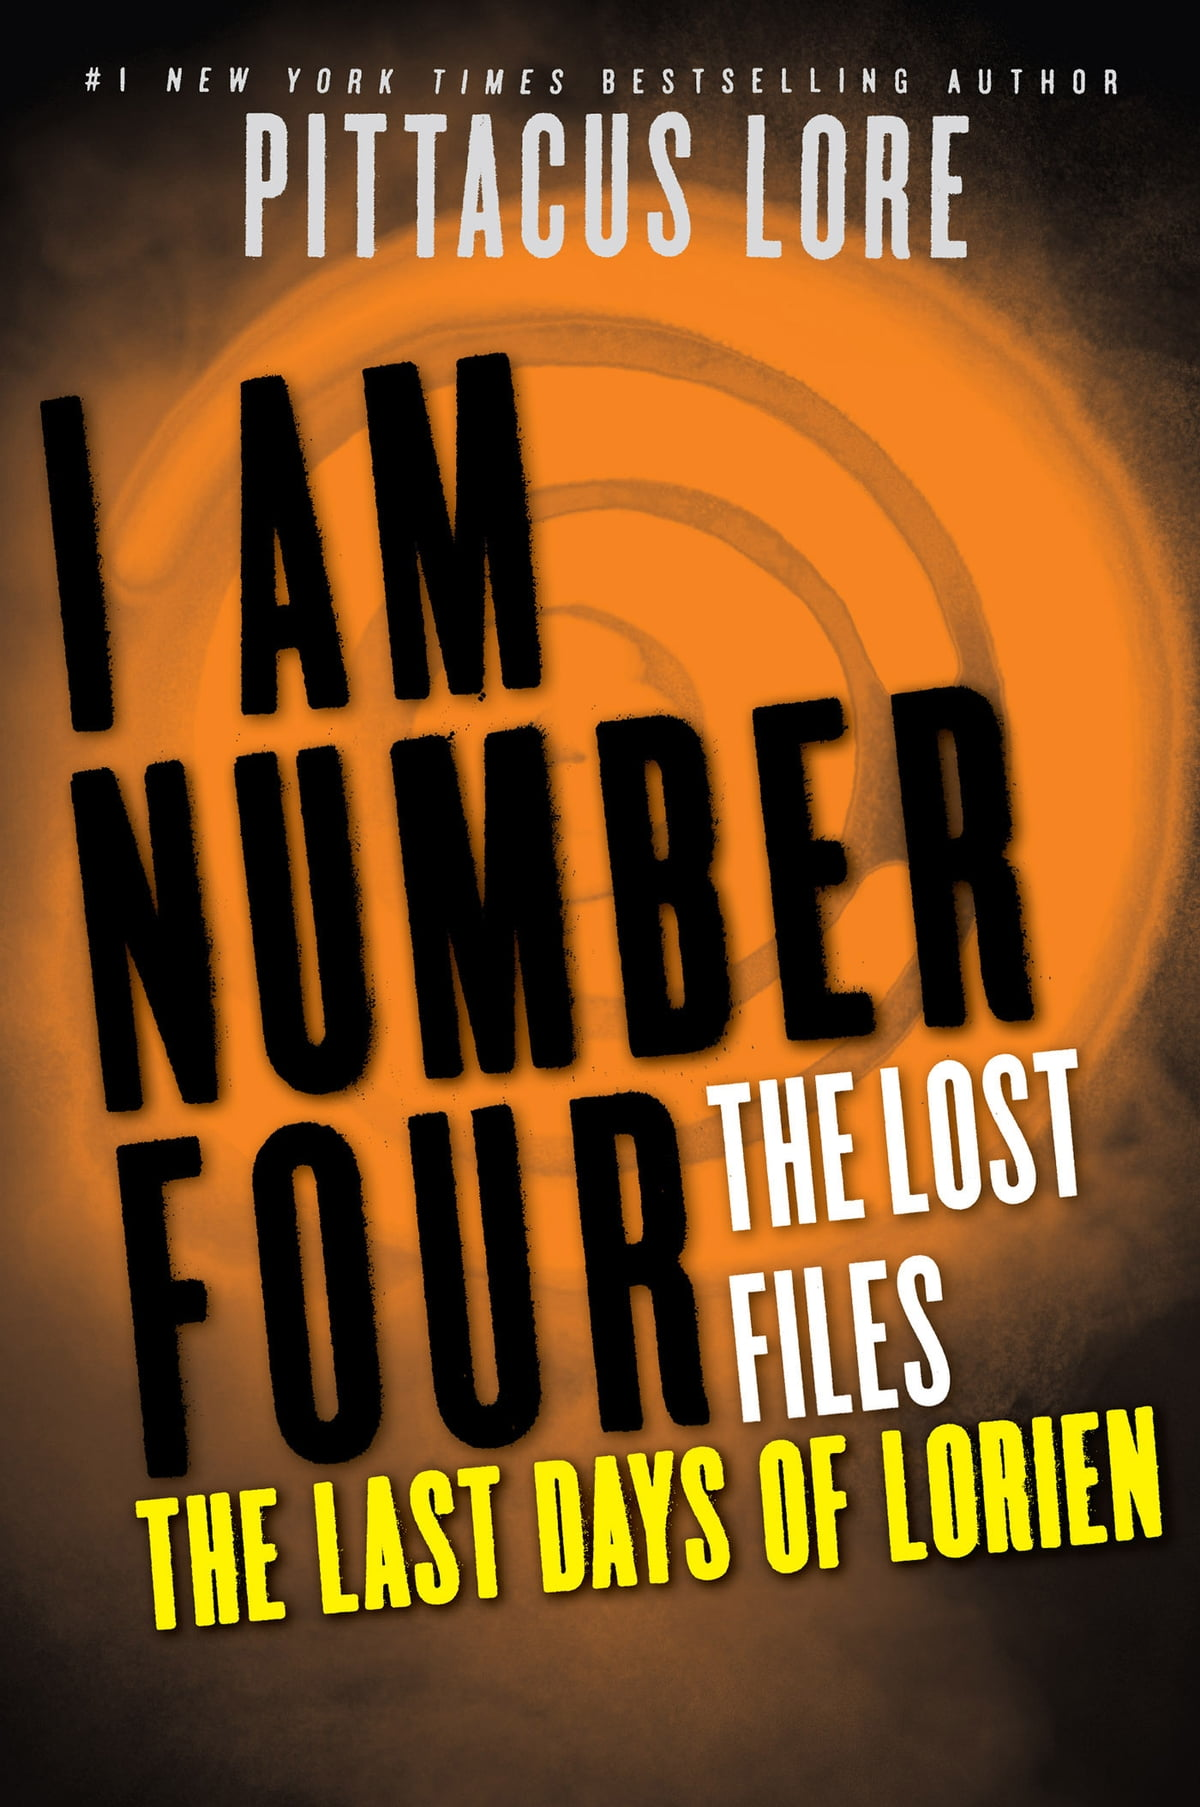 I Am Number Four The Lost Files The Last Days Of Lorien Ebook By Pittacus Lore 9780062218780 Rakuten Kobo